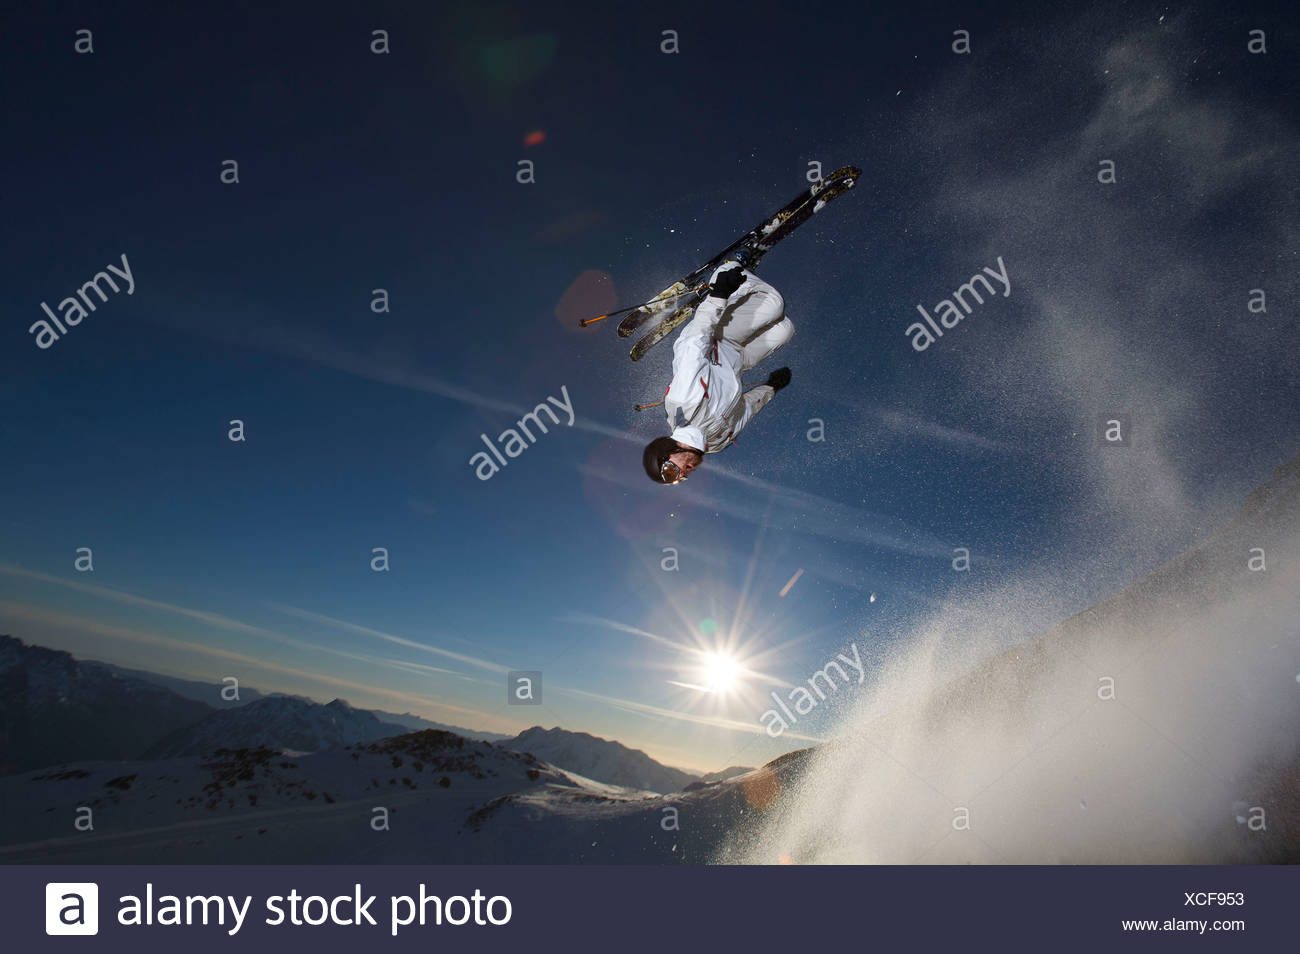 Skier back flipping off a rock. - Stock Image